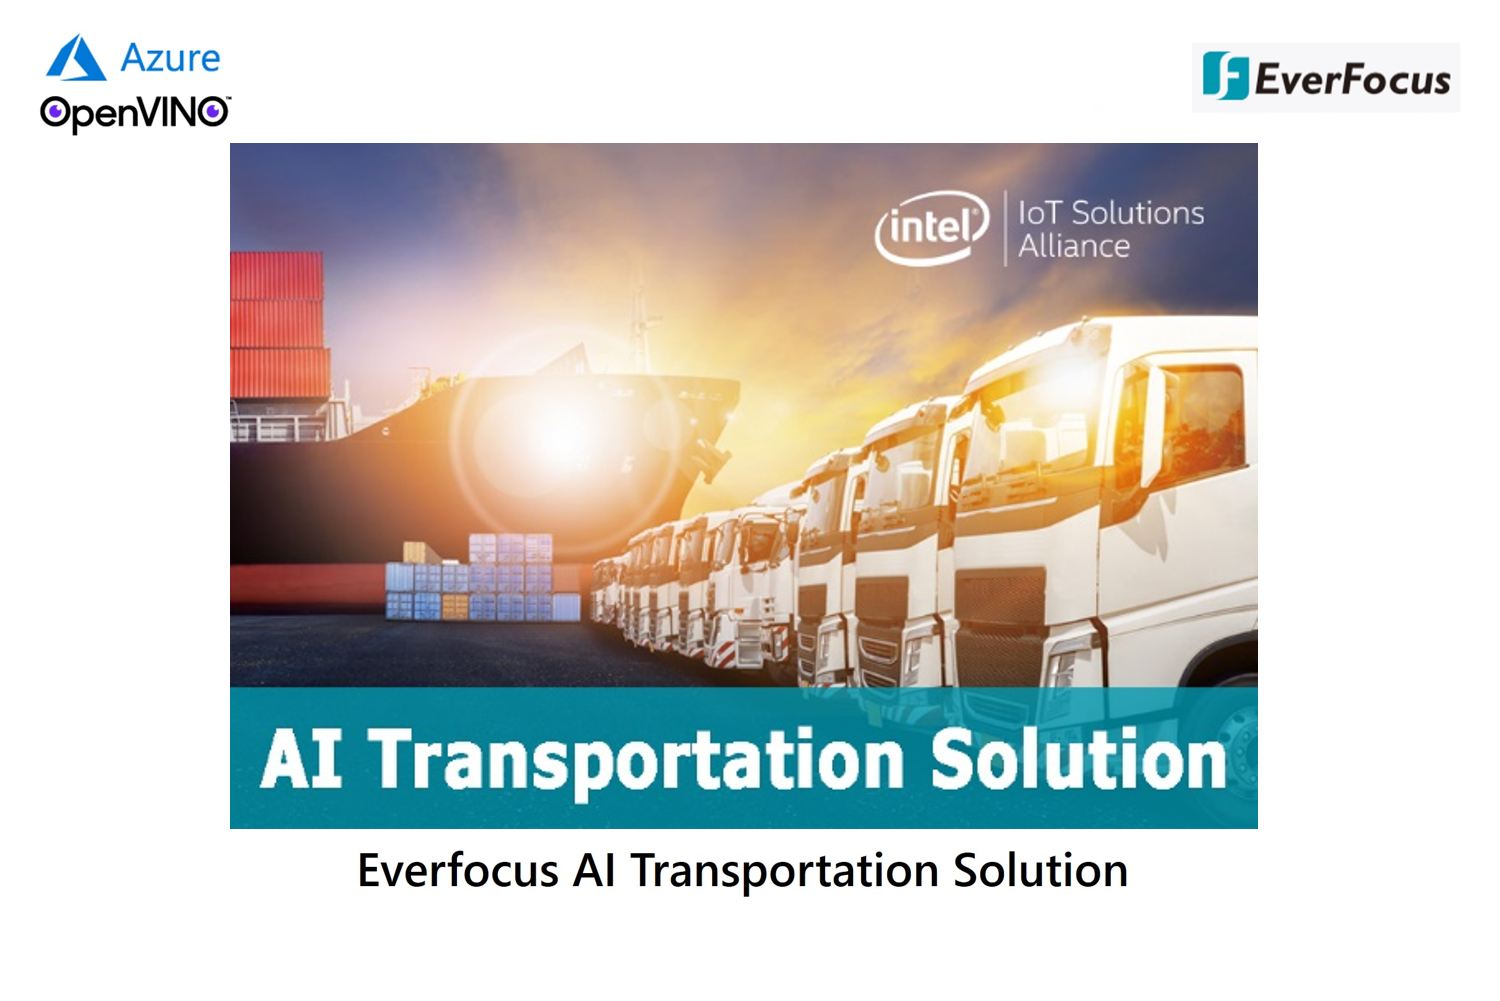 Everfocus AI Transportation Solution(eIVP-KBU-IV-V0004)